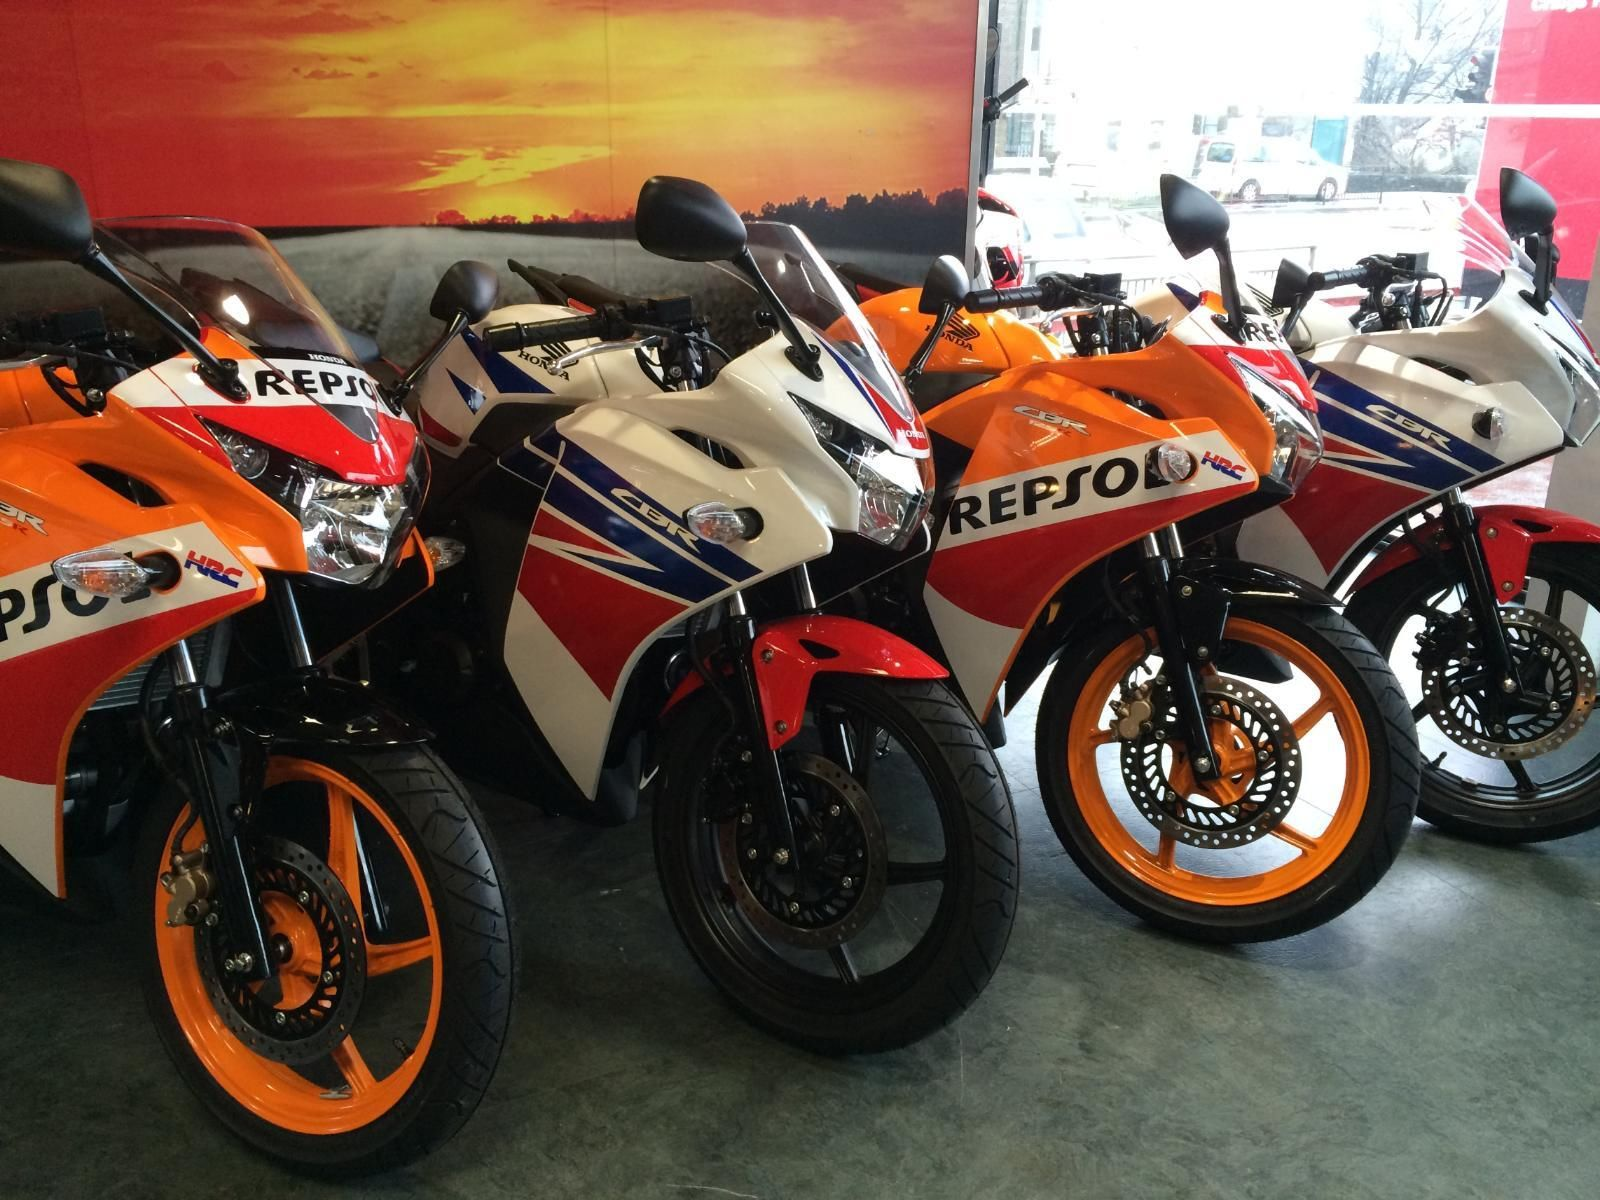 honda cbr 125 r repsol 2015 0 apr representative only 99 deposit. Black Bedroom Furniture Sets. Home Design Ideas